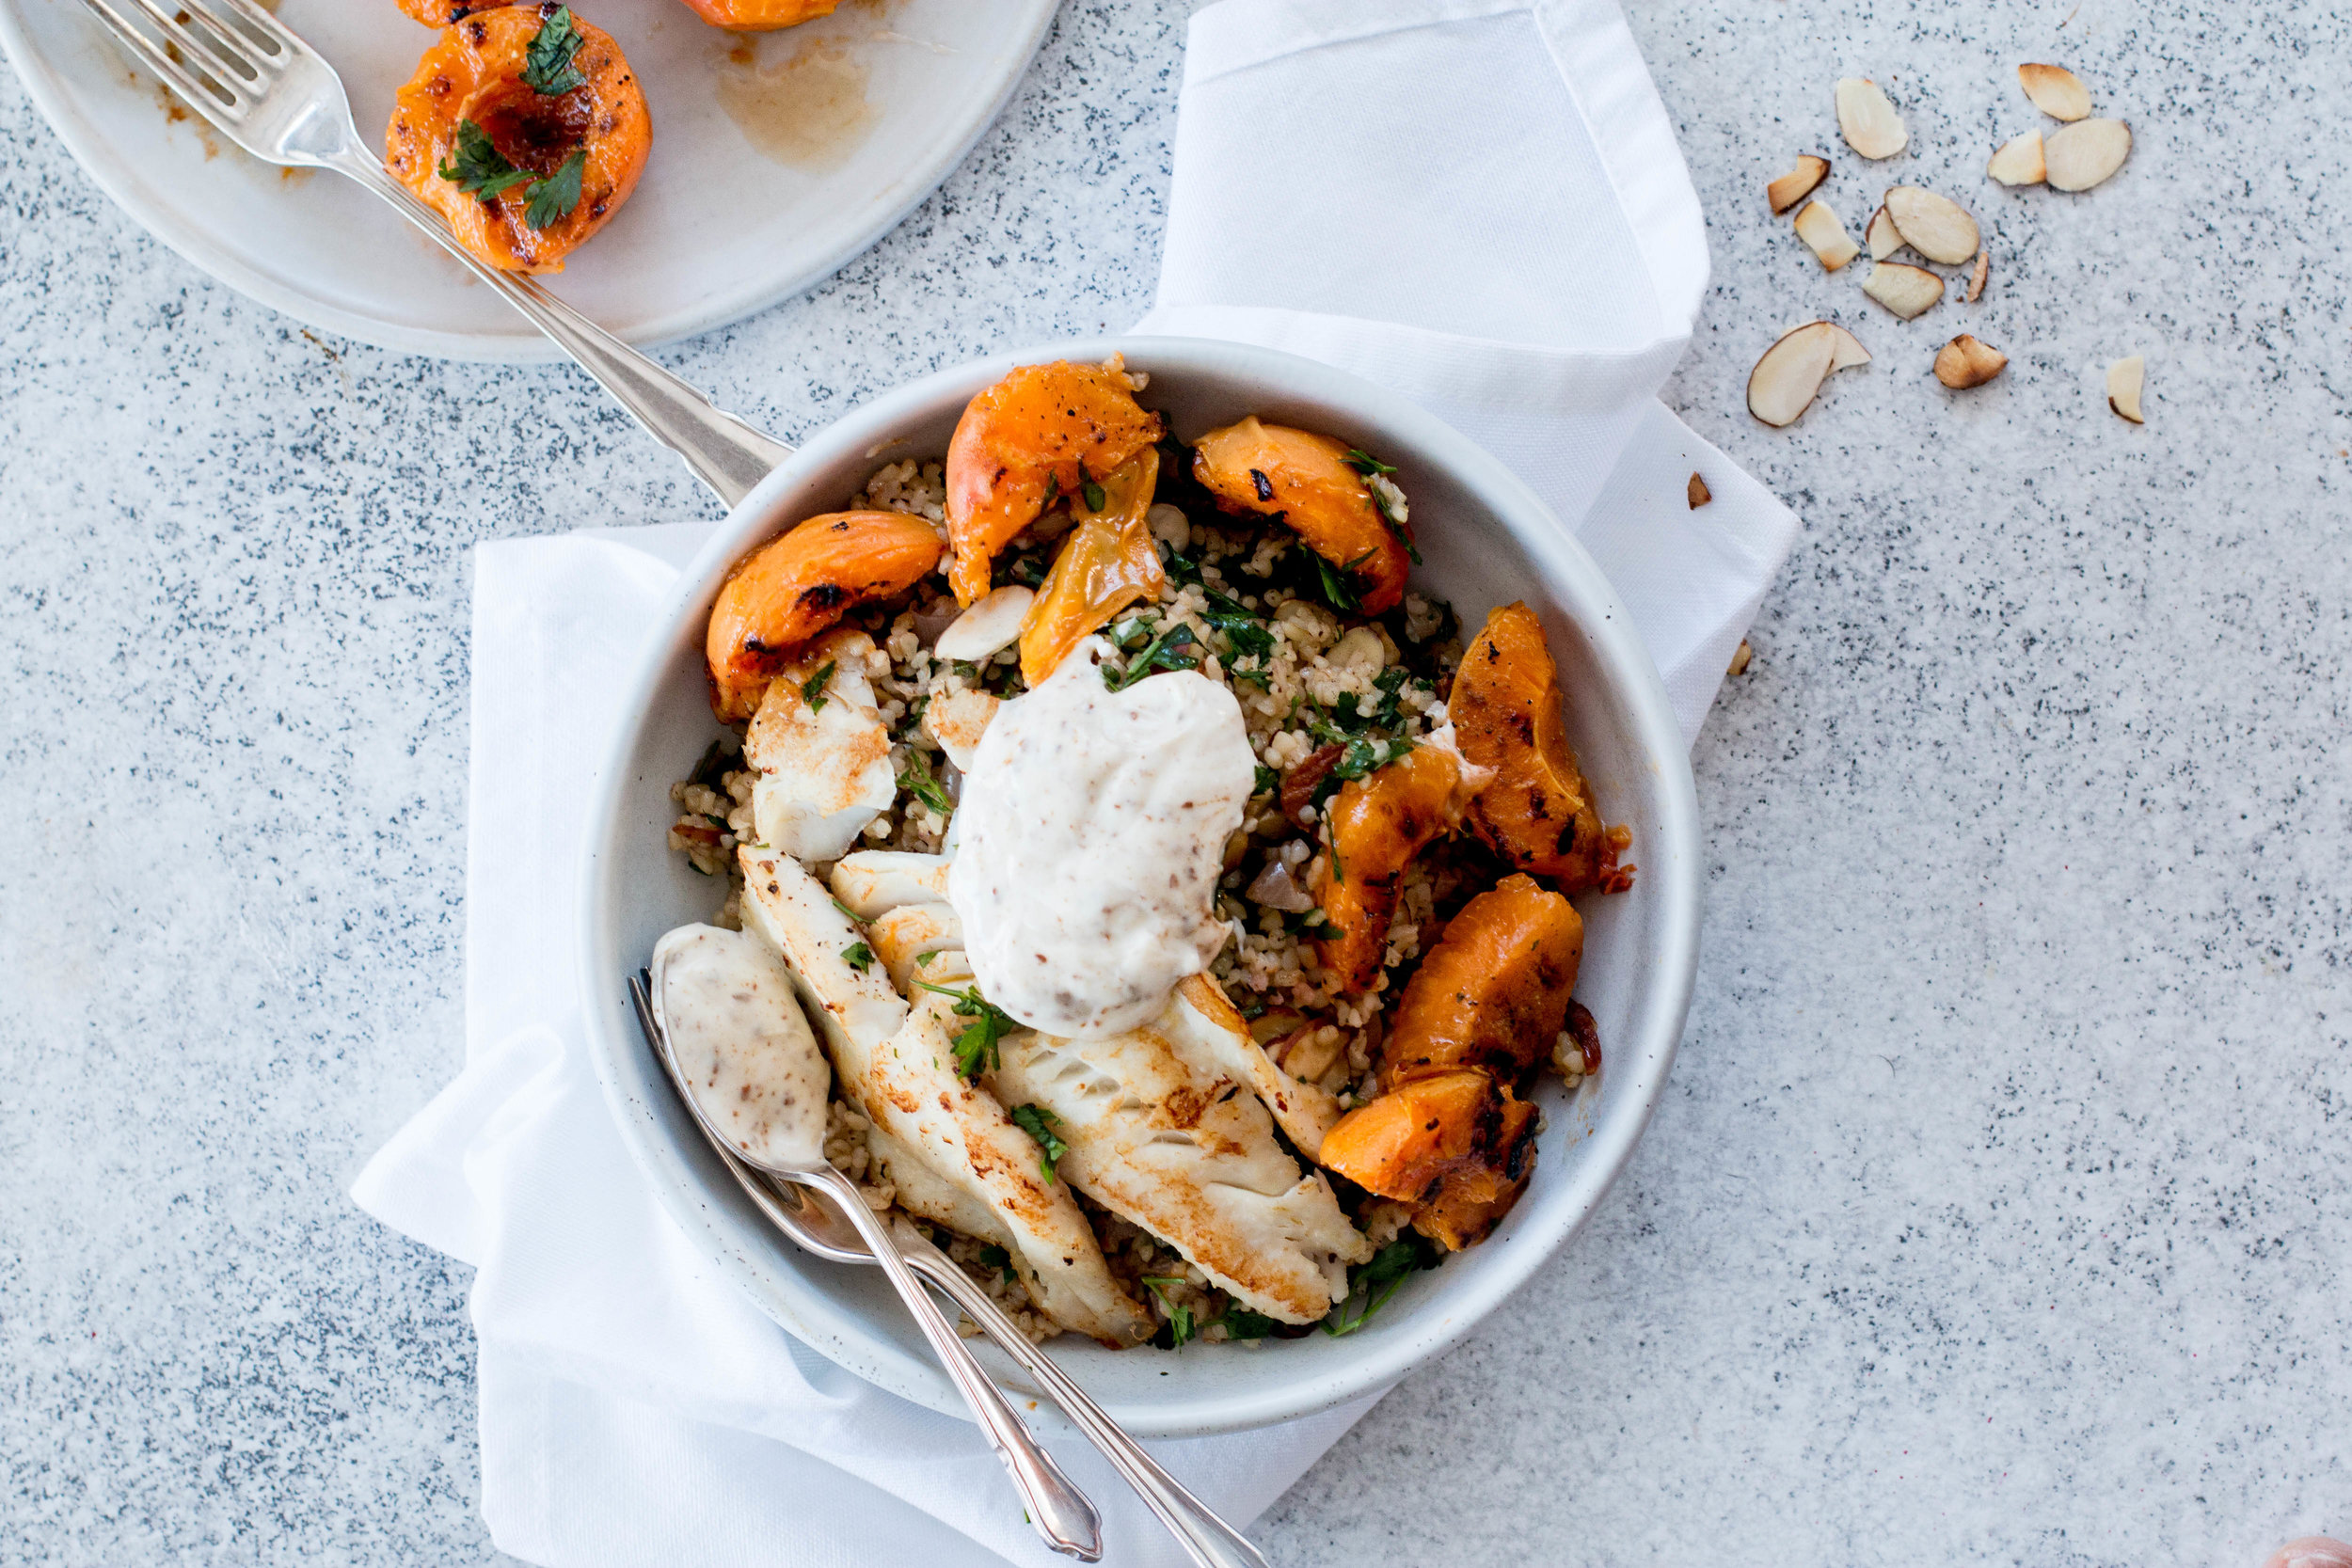 Grilled Apricots with Spiced Bulgur Pilaf & Pan-fried Fish-4.jpg